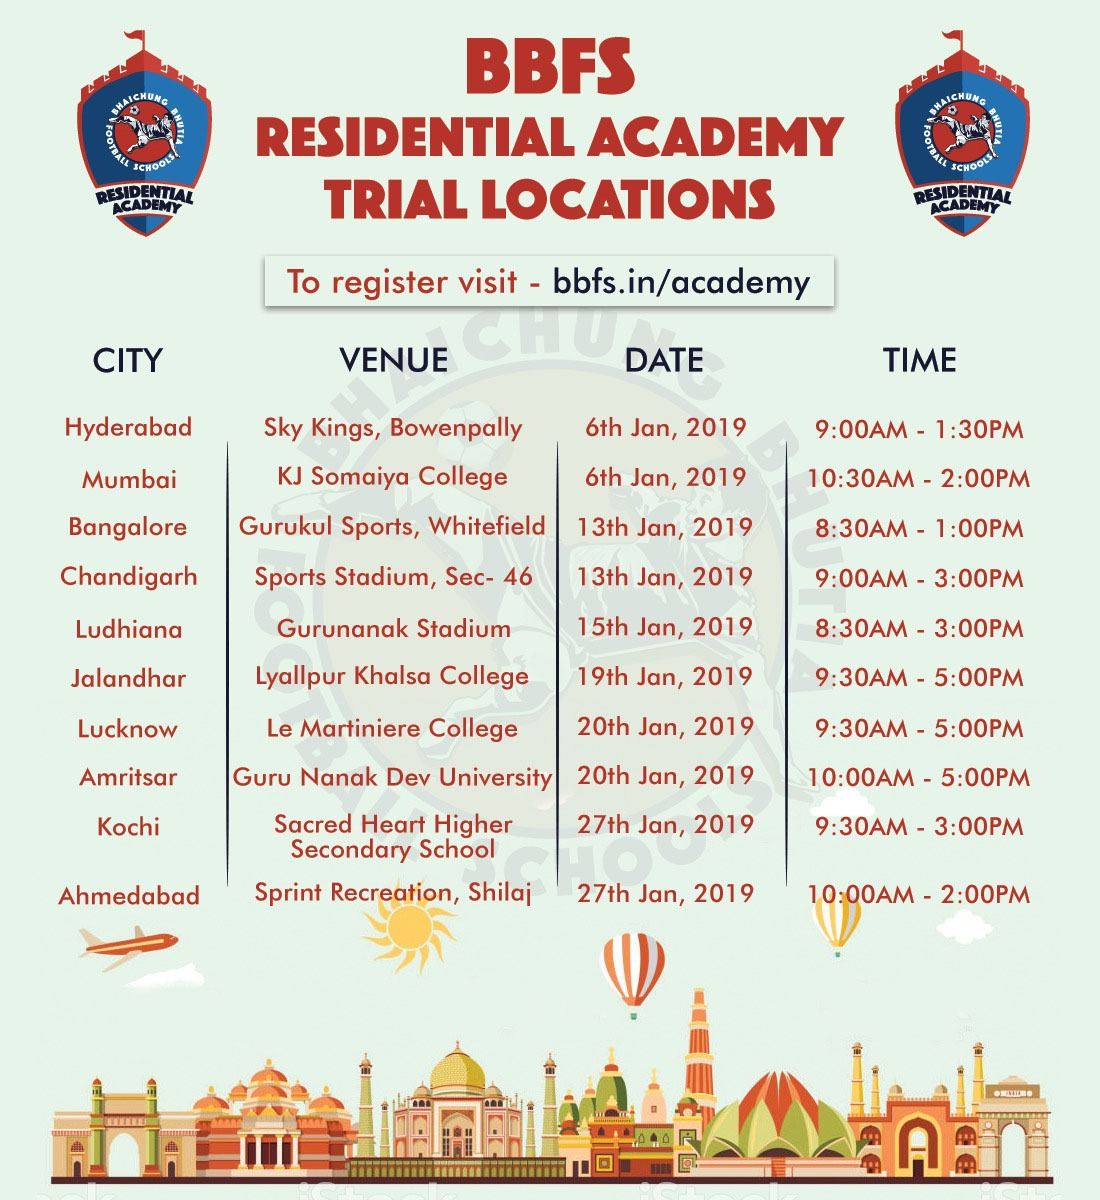 BBFS Residential Academy trials in 2019. (Image courtesy: BBFS)